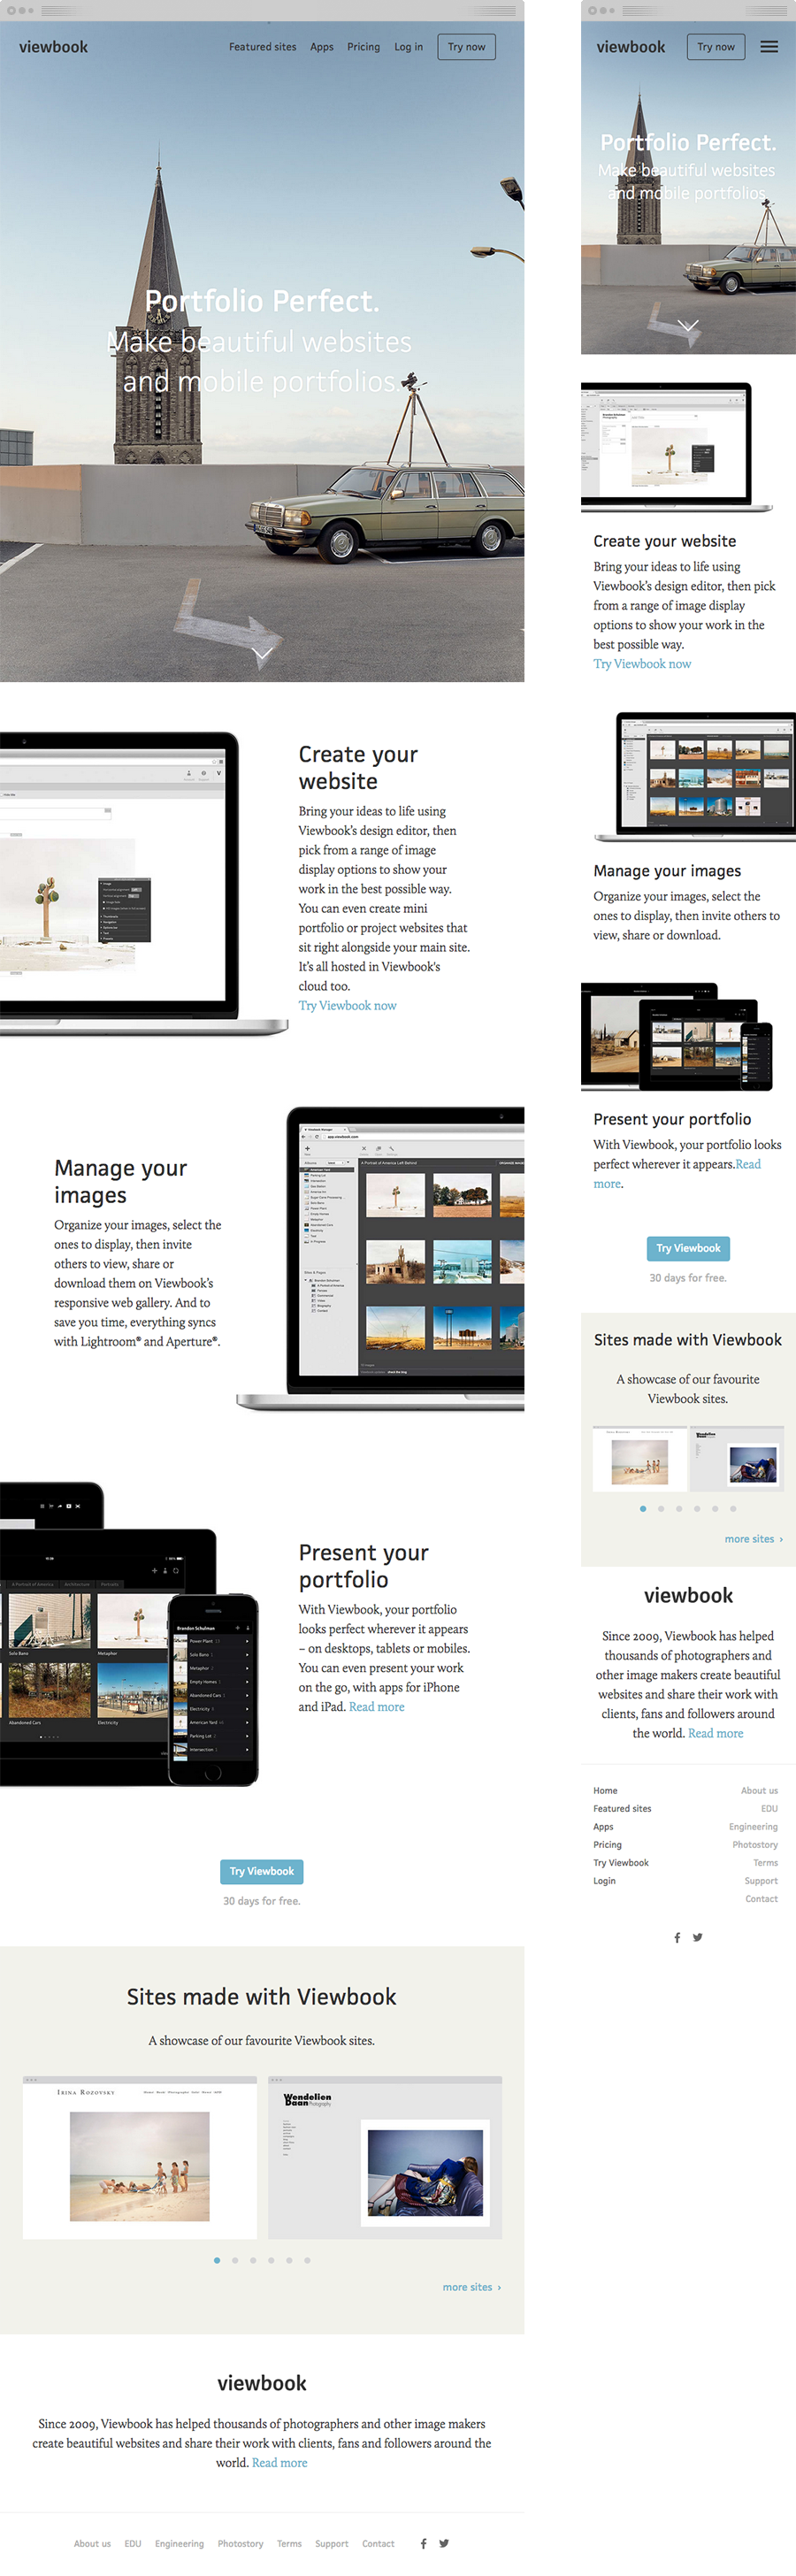 The homepage on tablet and mobile